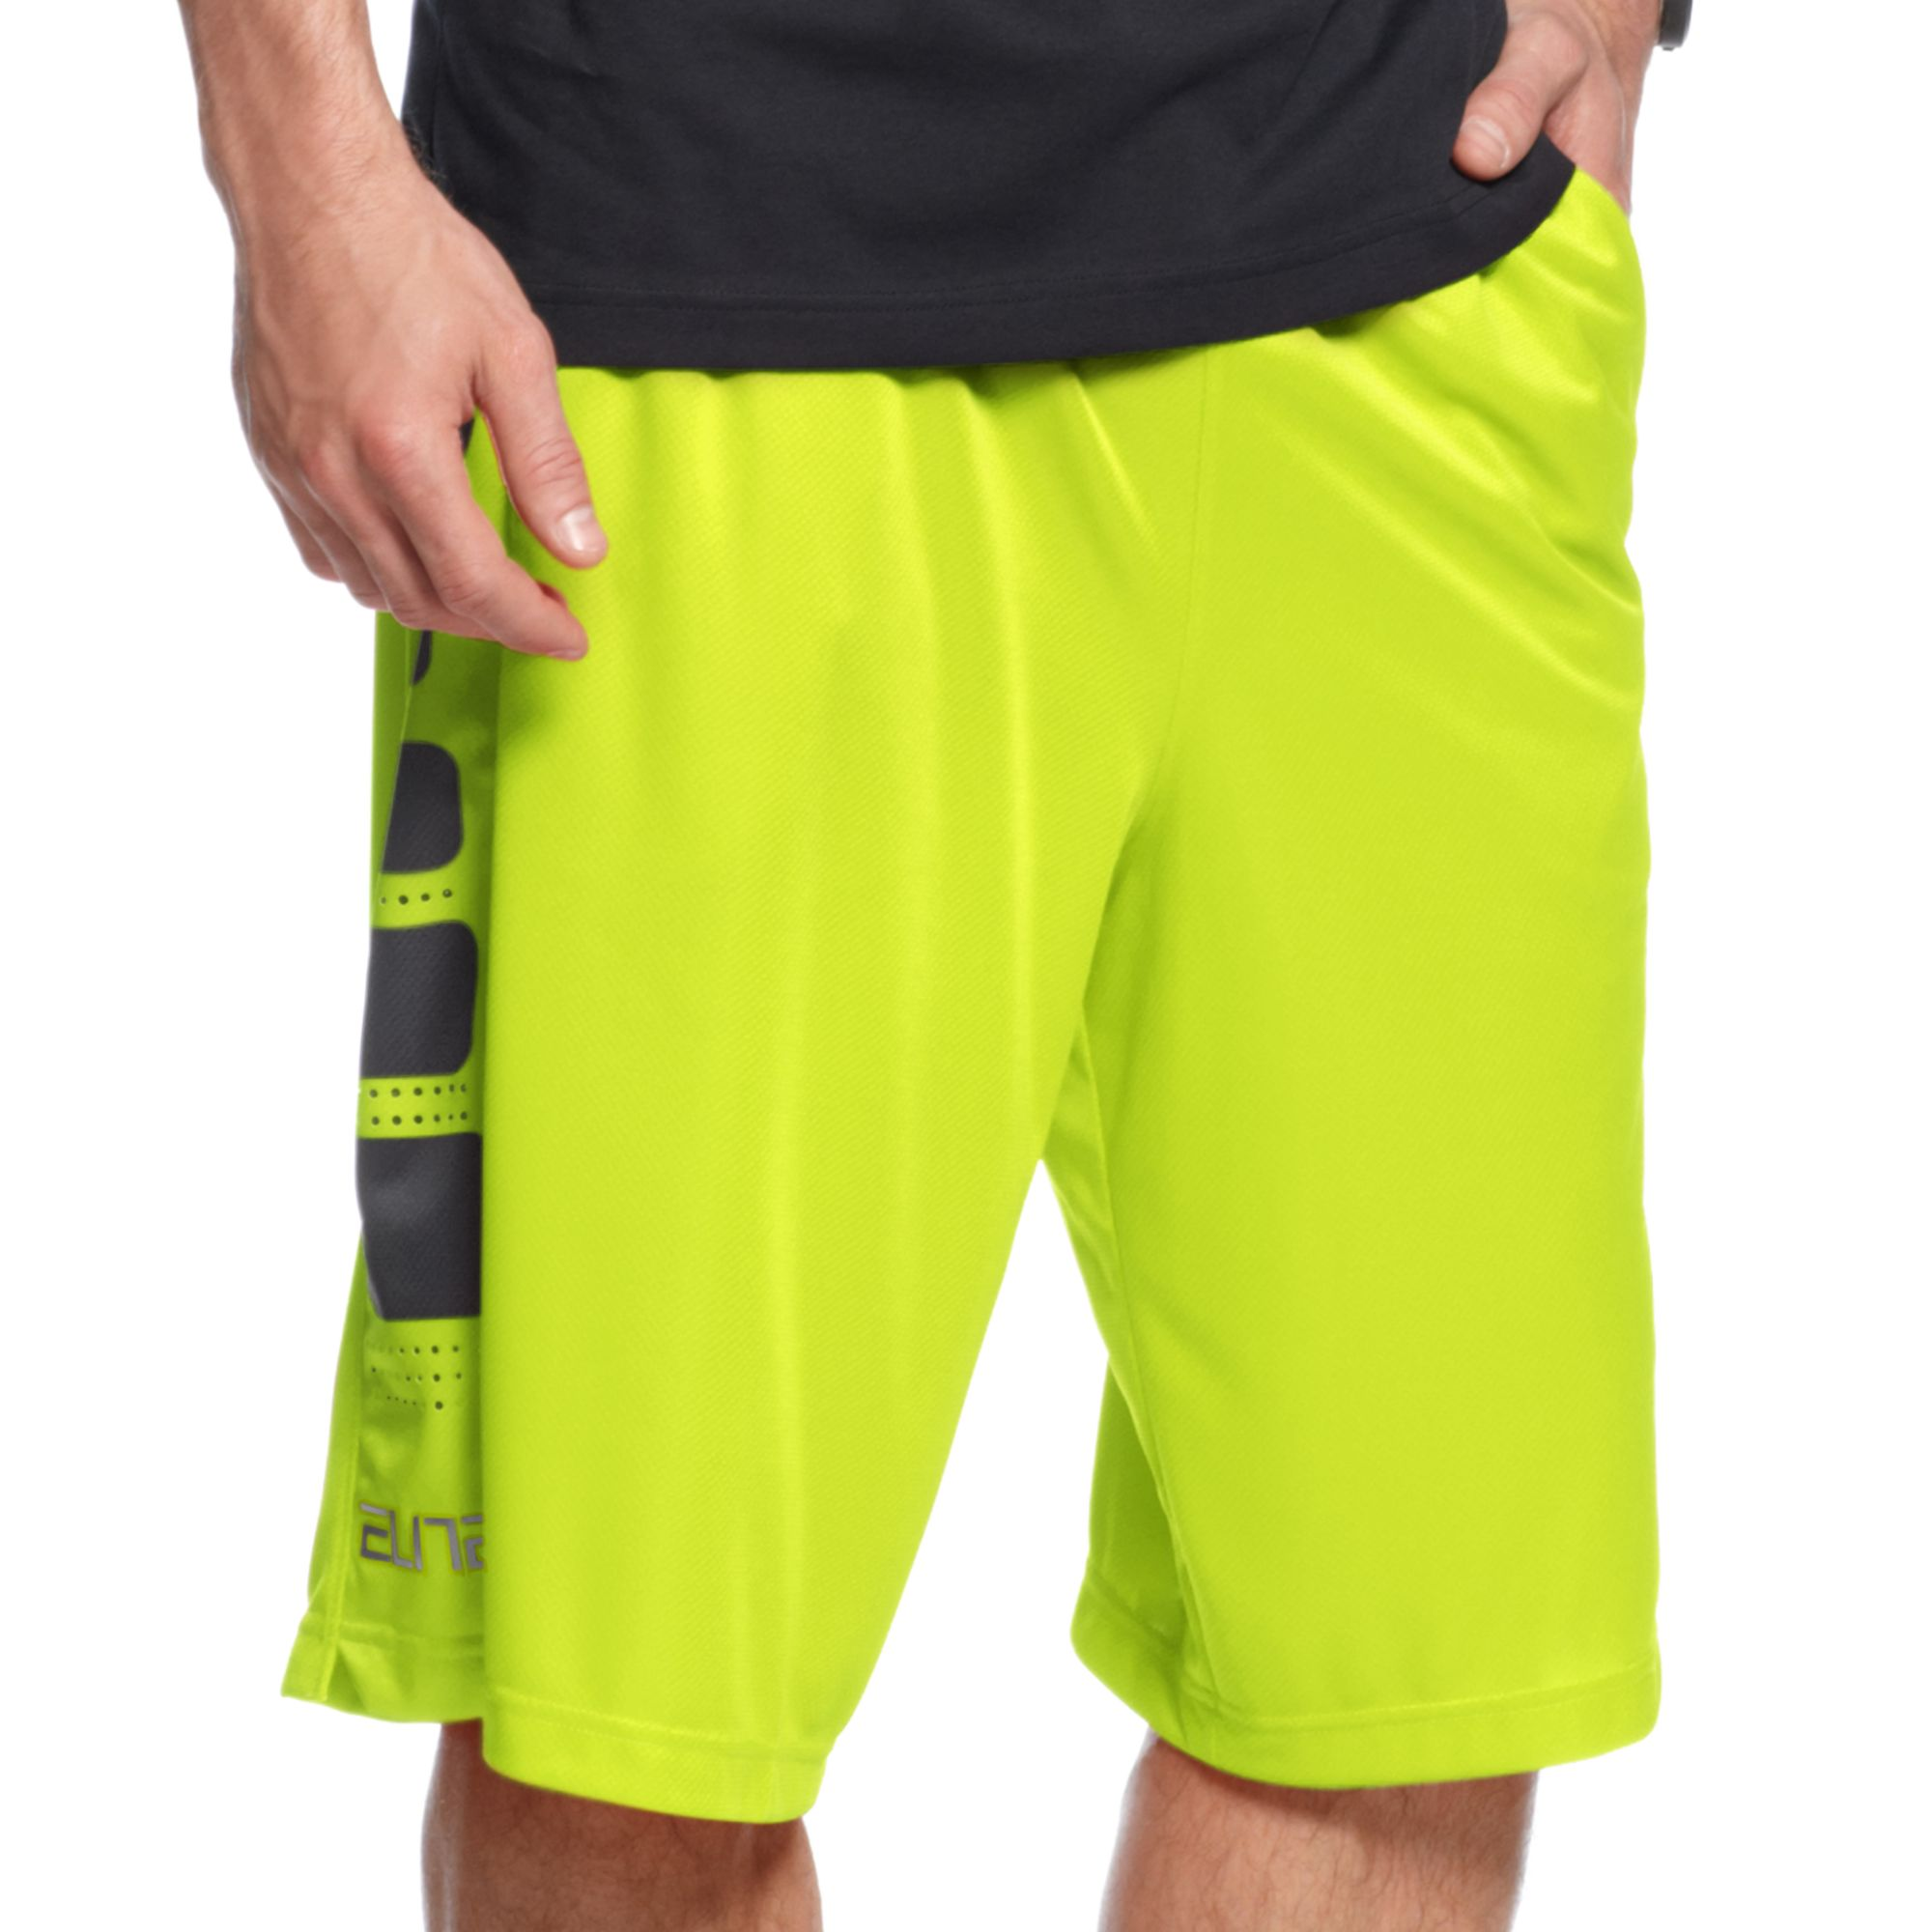 b6c3199c2f20 Lyst - Nike Elite Stripe Basketball Shorts in Yellow for Men